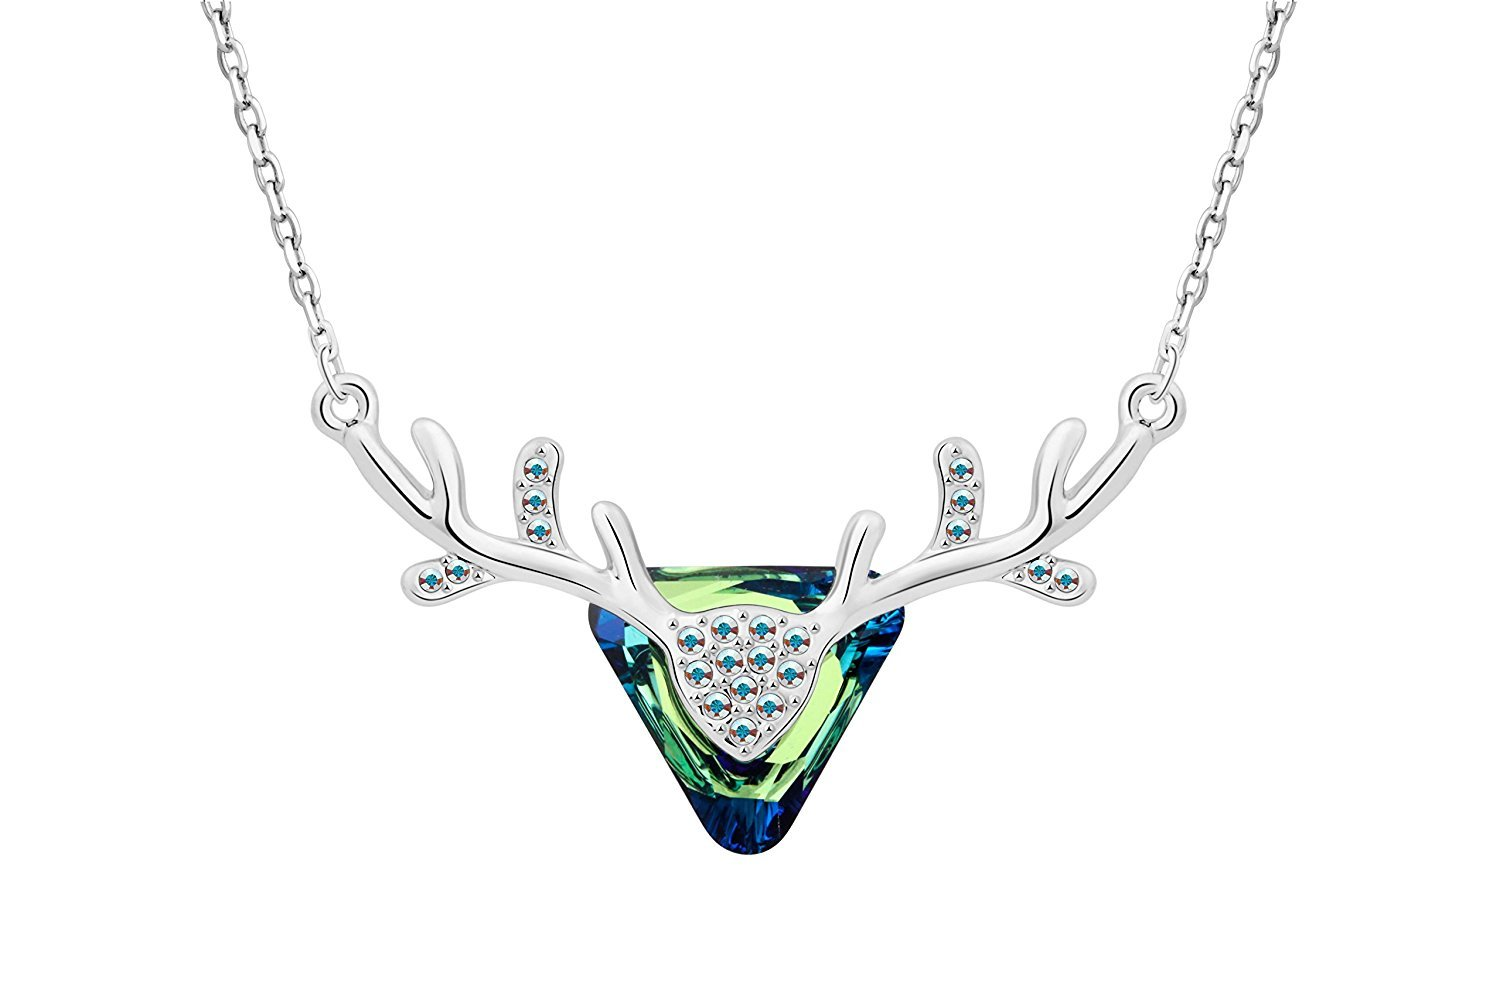 IUHA Elegant Oka Necklace made with Swarovski Crystal For Women Love Gift